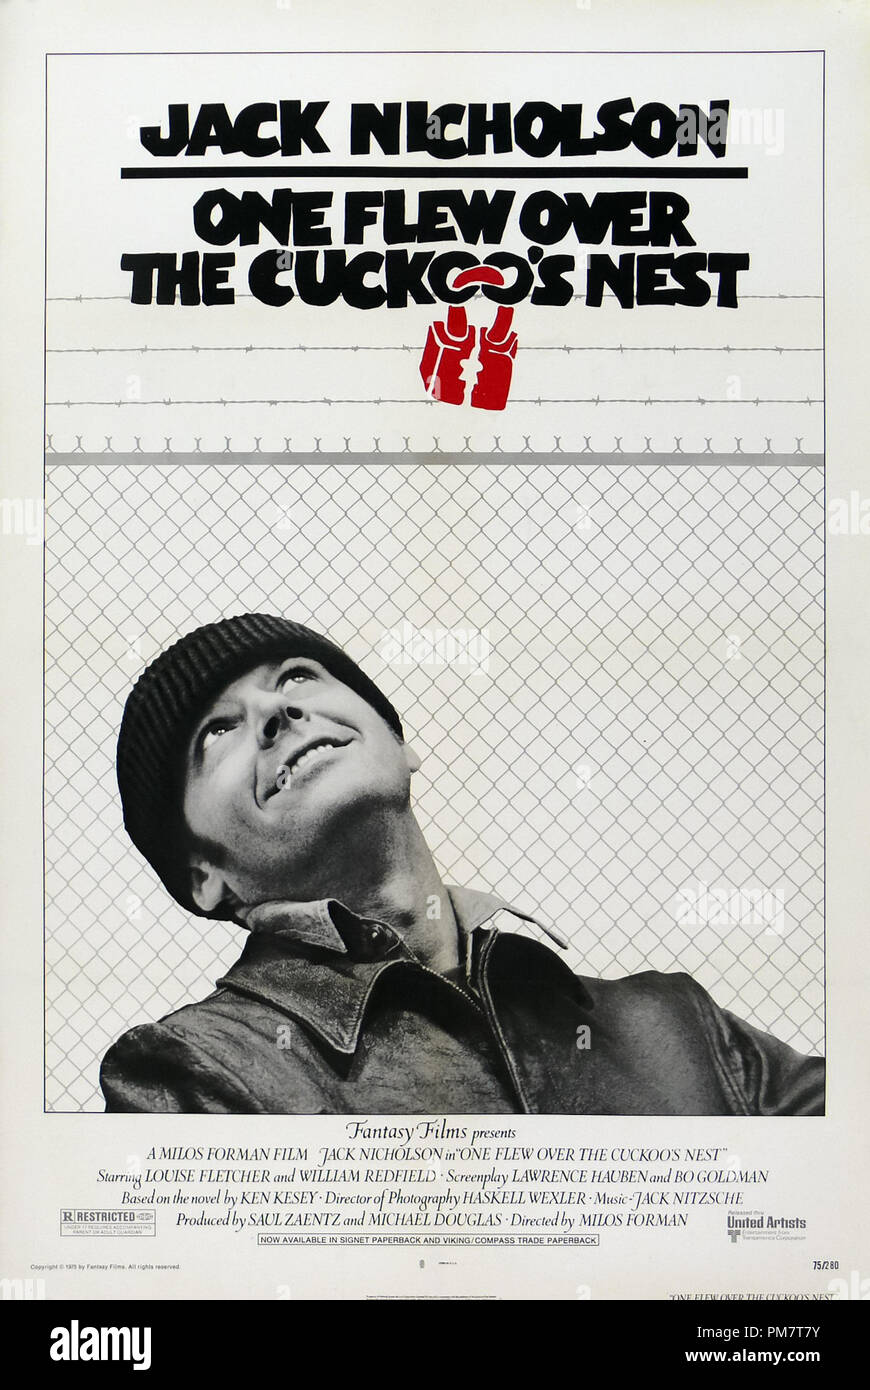 One Flew Over the Cuckoo's Nest 1975 Poster   File Reference # 31386_587THA - Stock Image